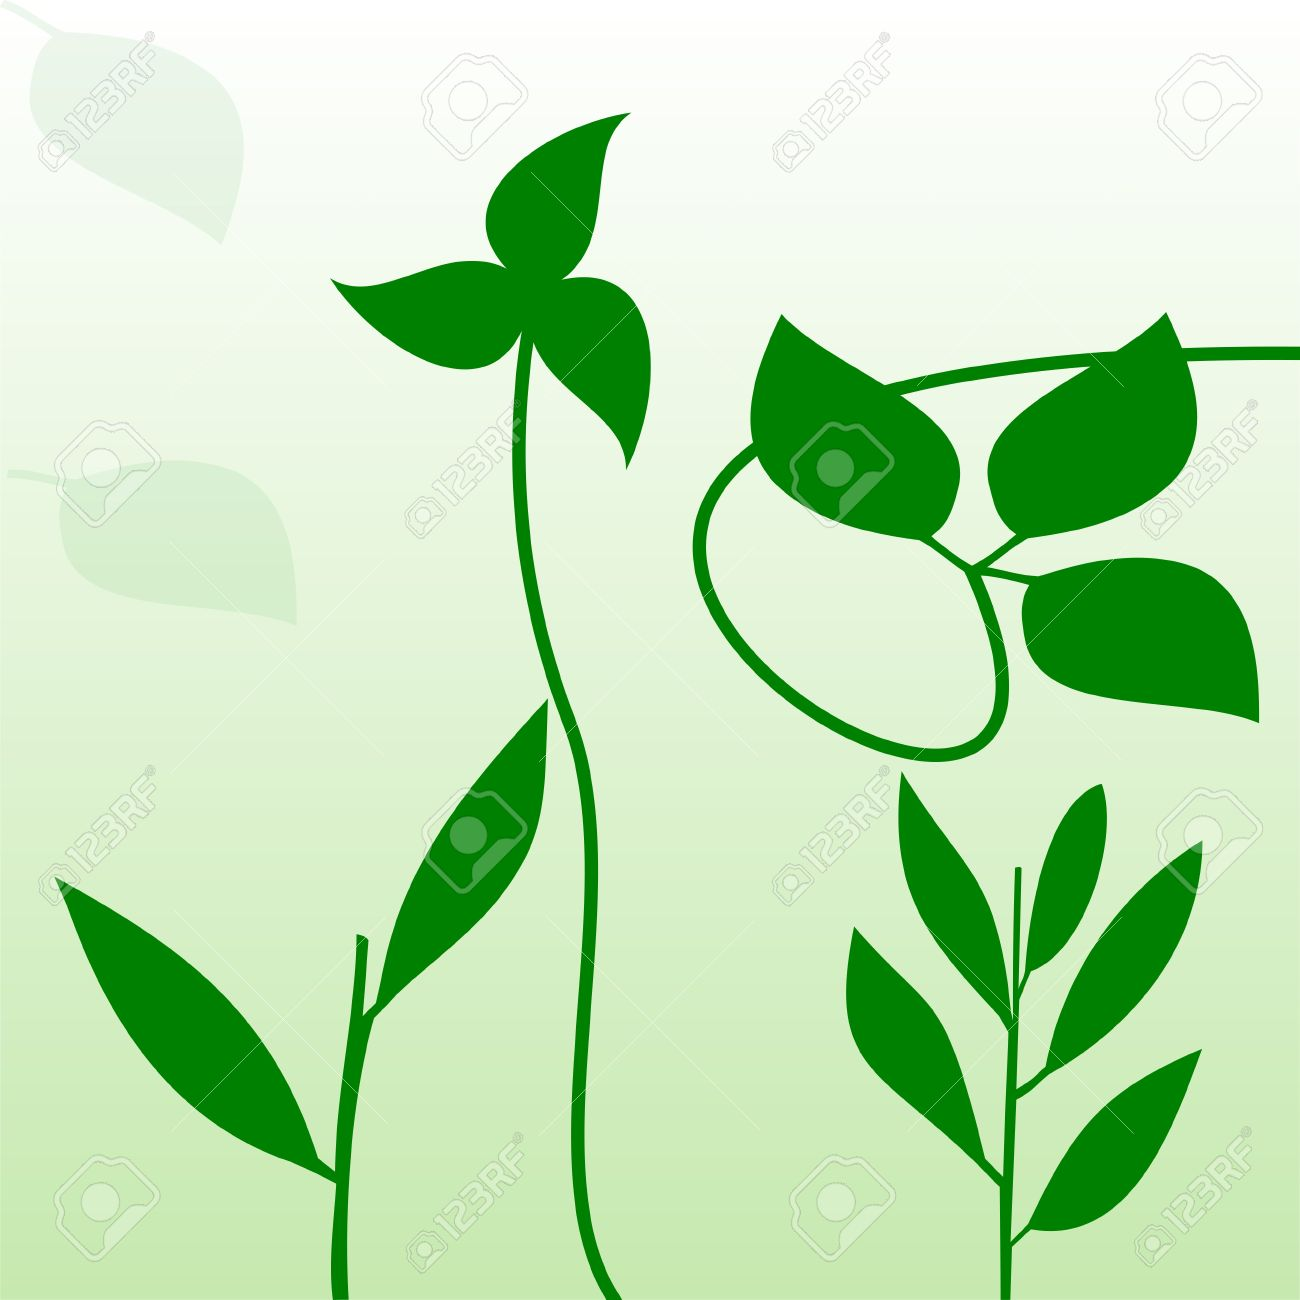 Illustration Reed And Wild Plant Royalty Free Cliparts, Vectors.